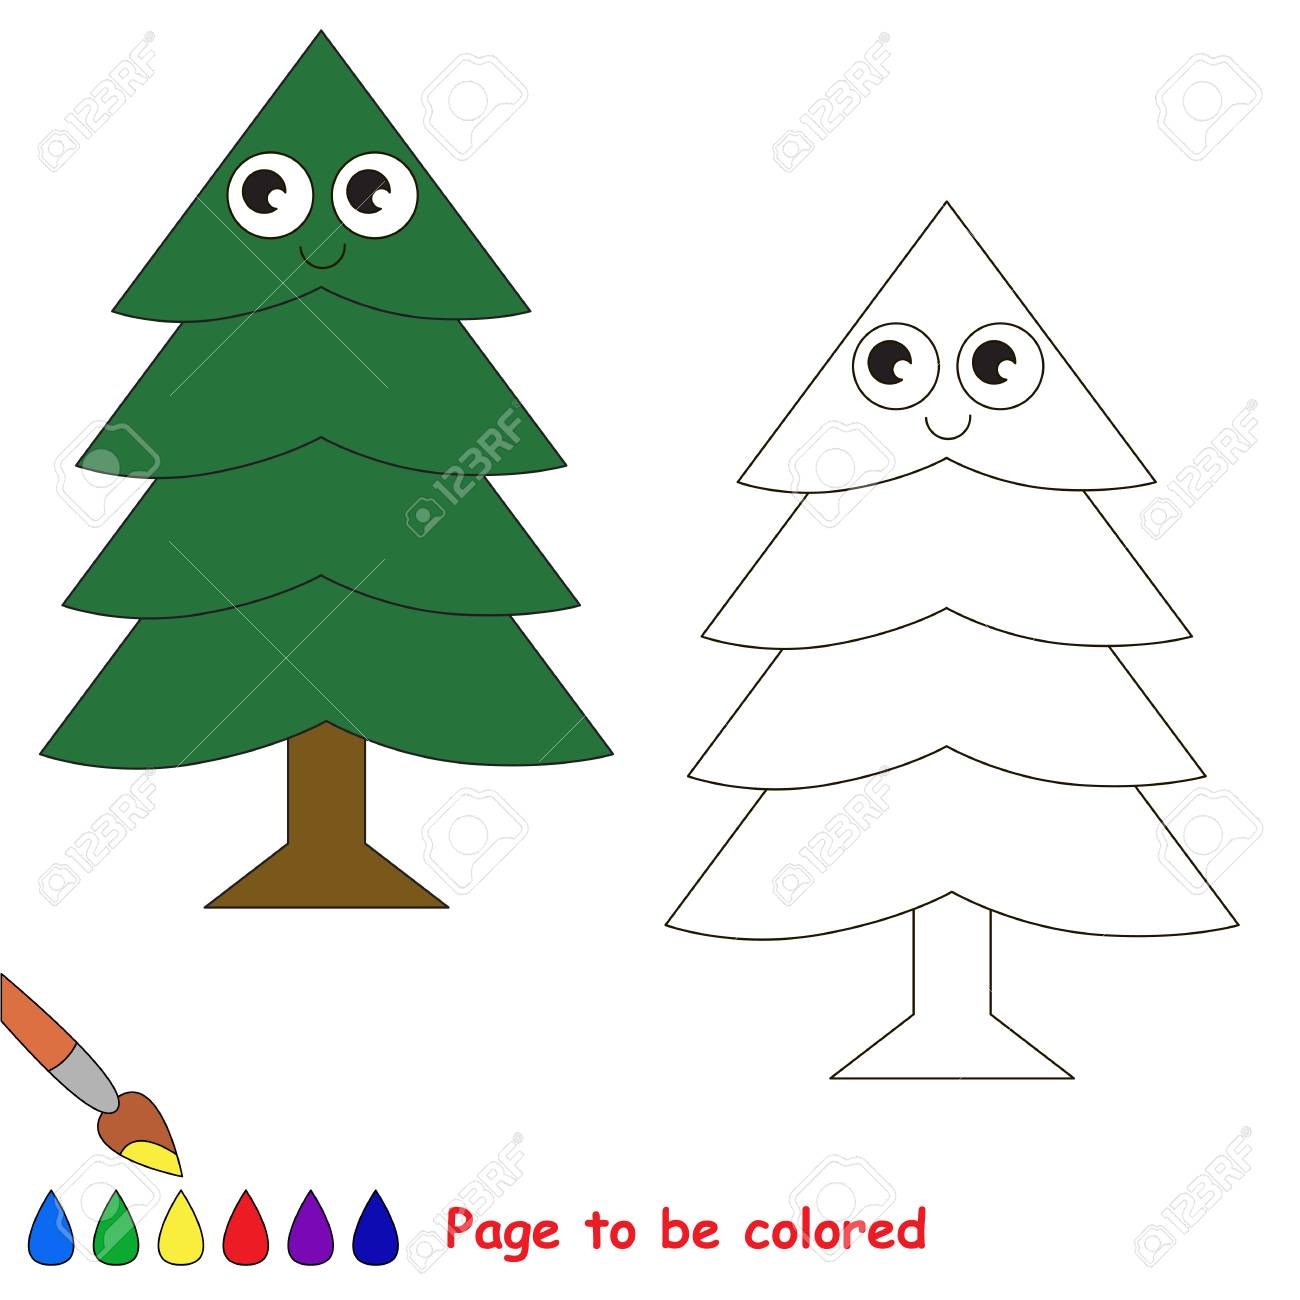 Fur Tree To Be Colored, The Coloring Book To Educate Preschool ...